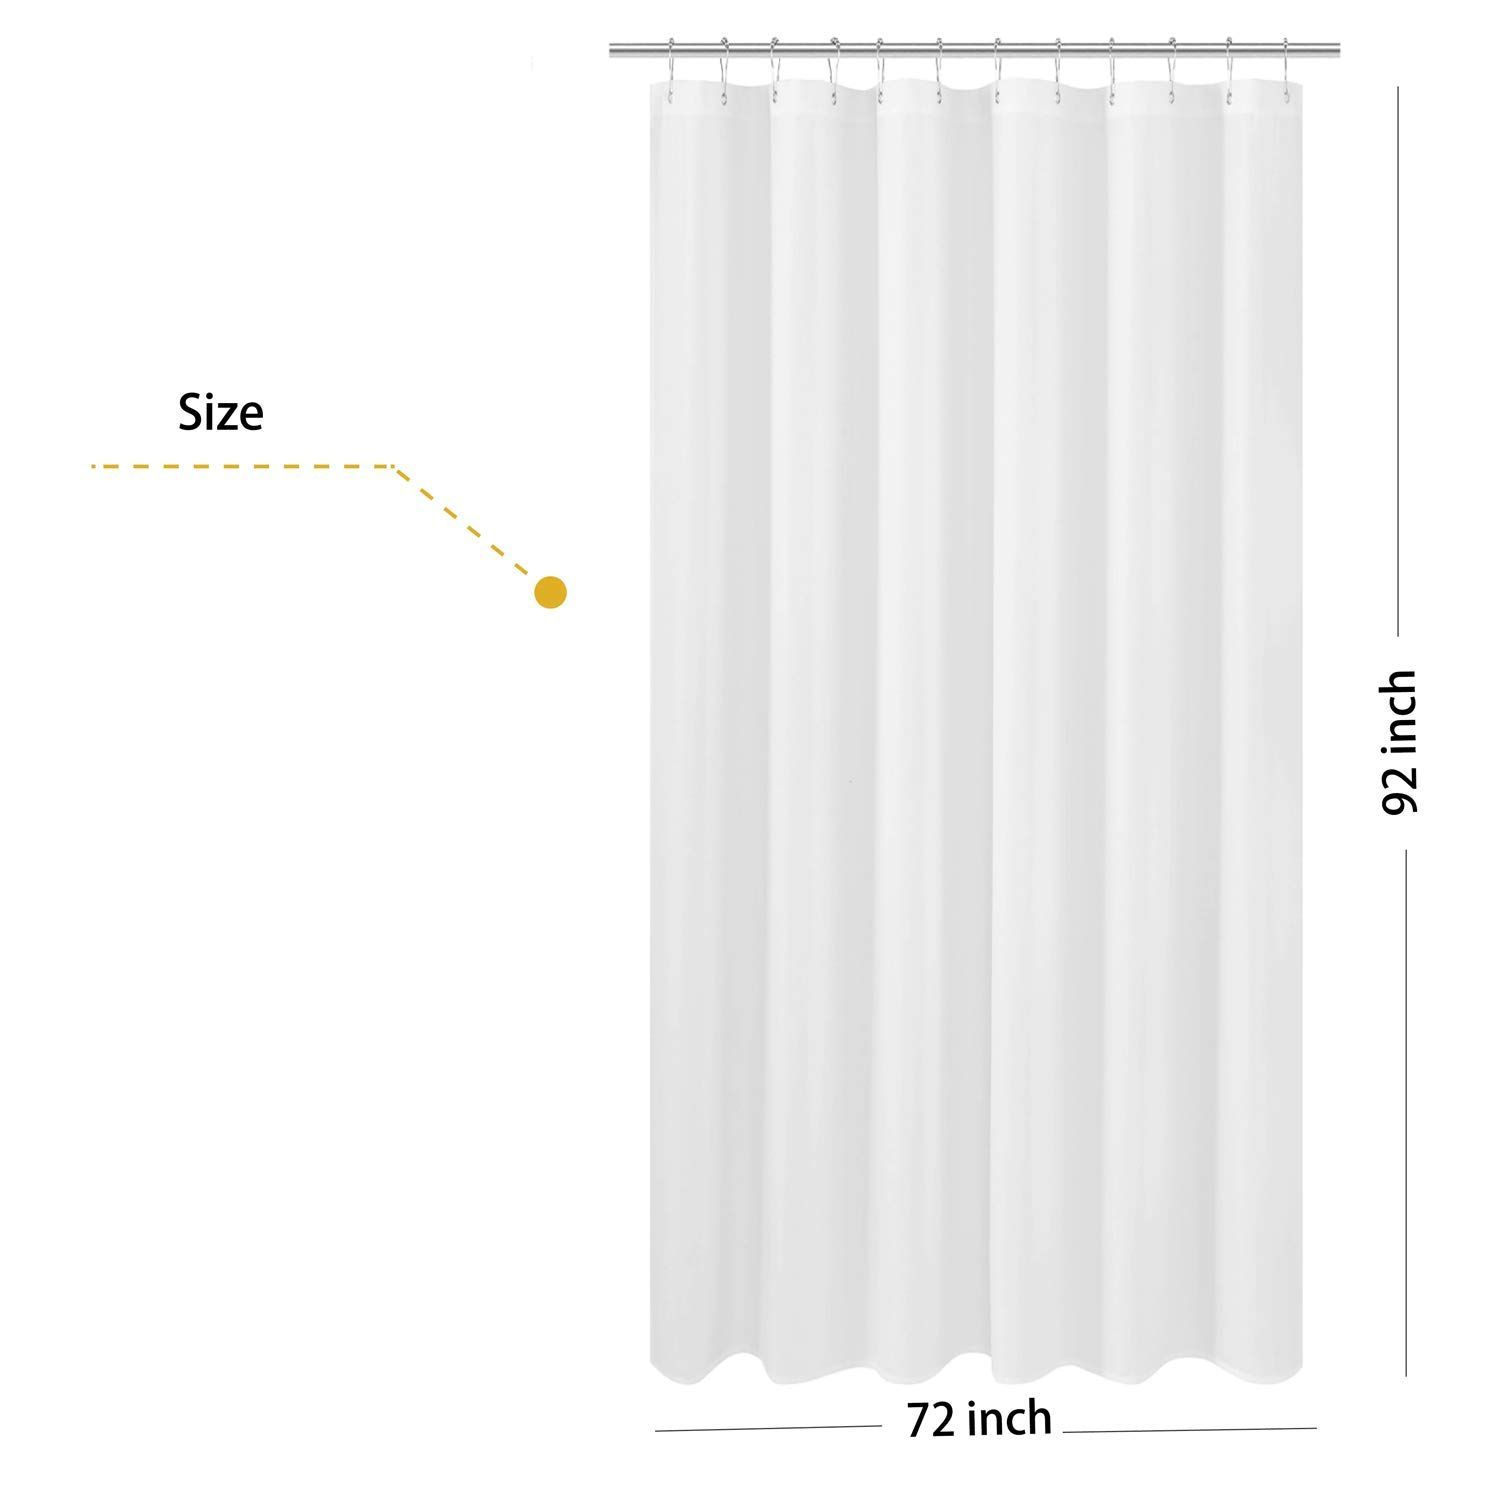 A Comprehensive Overview On Home Decoration In 2020 Shower Curtain Extra Long Shower Curtain Diy Shower Curtain